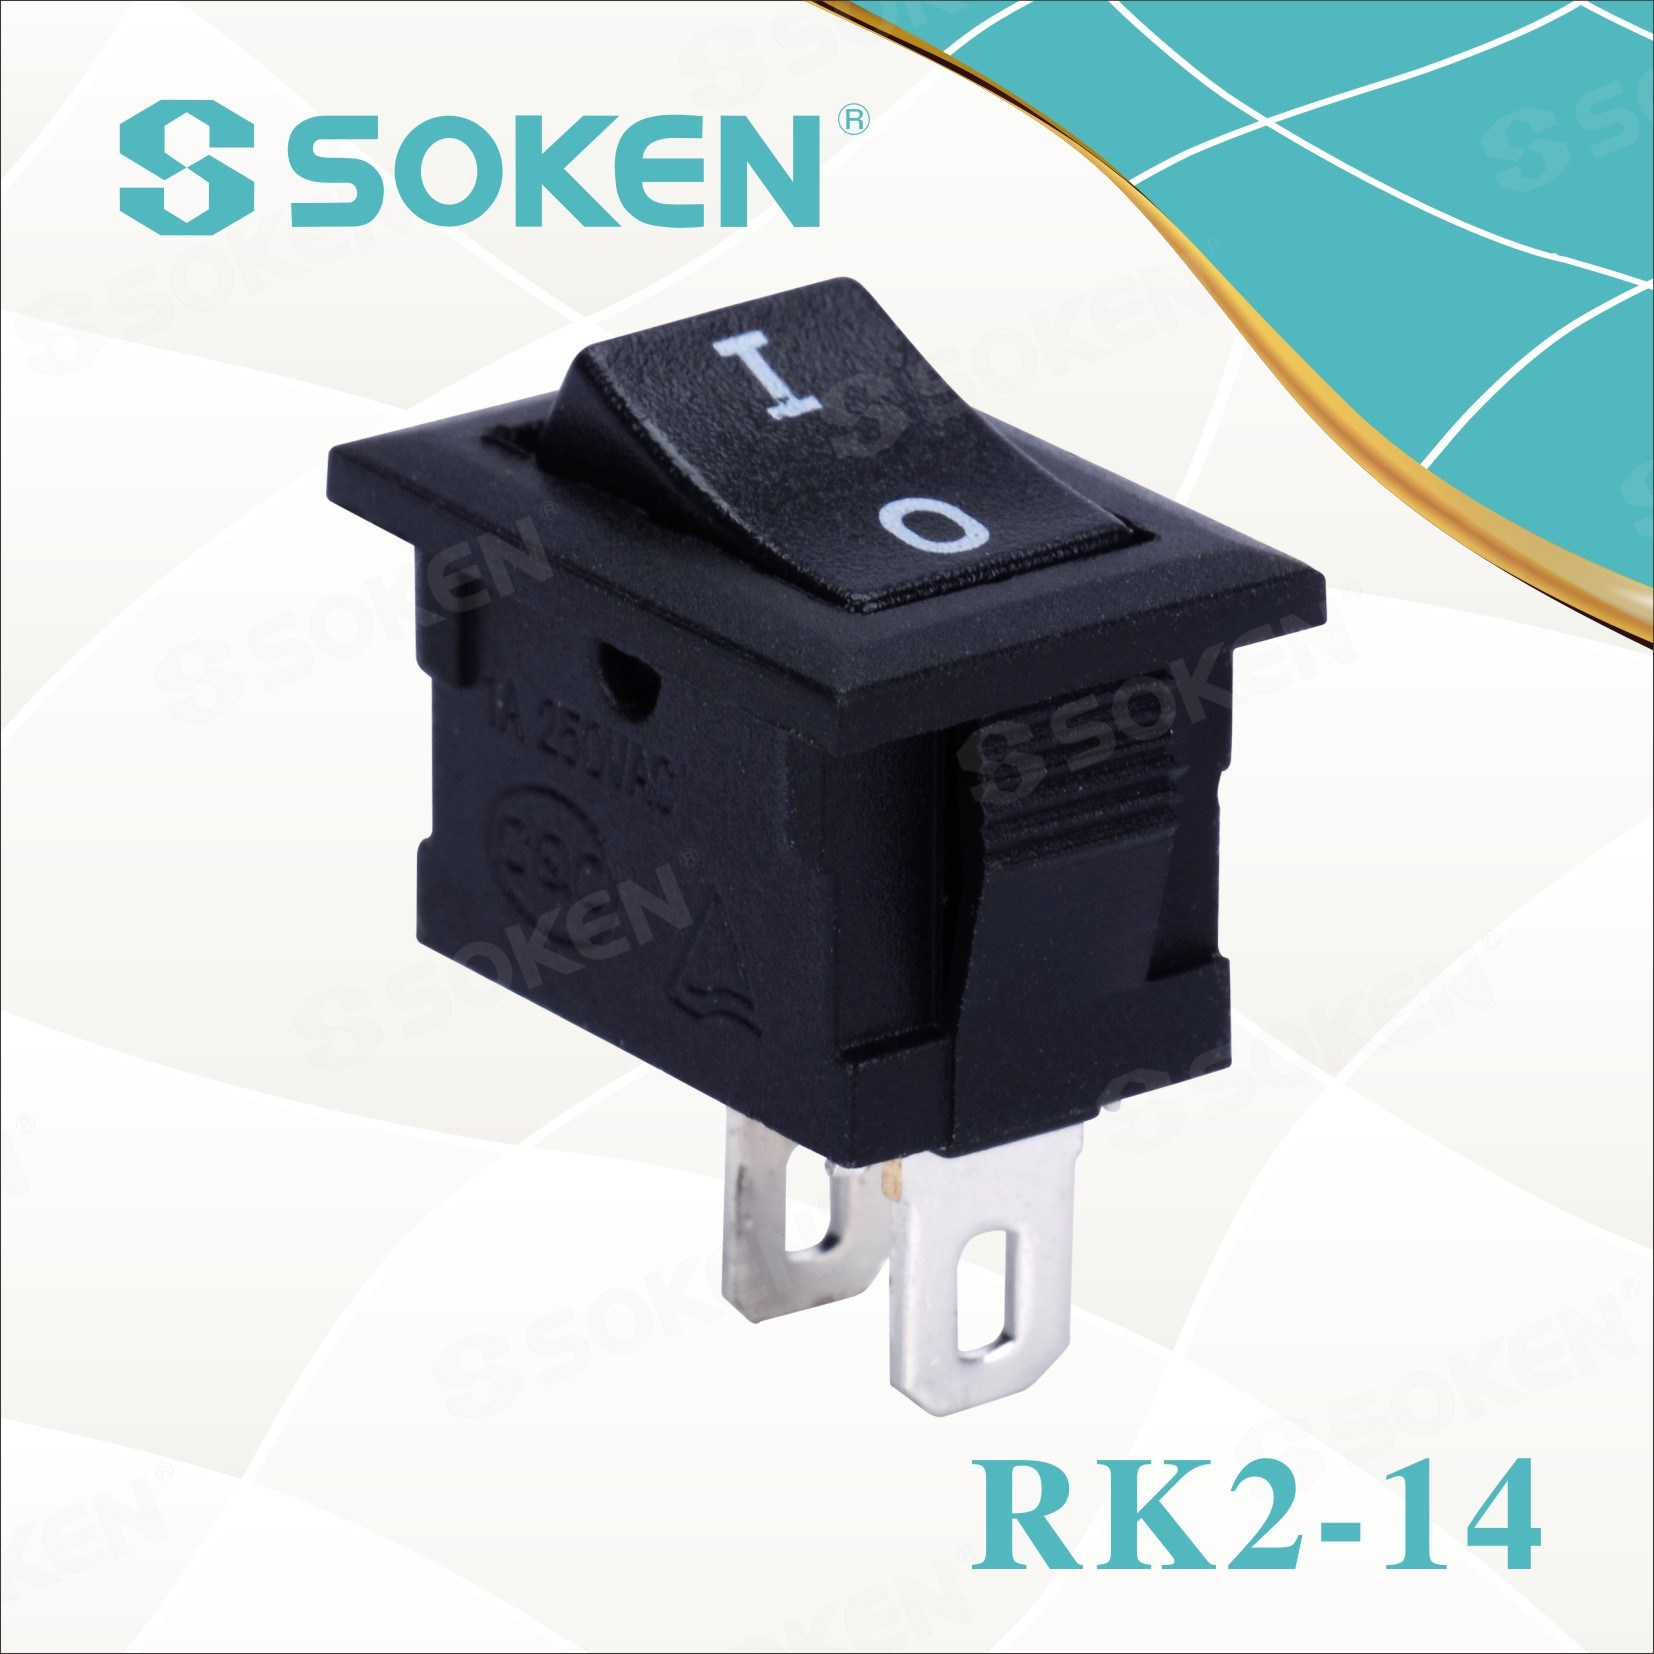 Söke'nin Rk2-14 1X1 Electric Rocker Switch